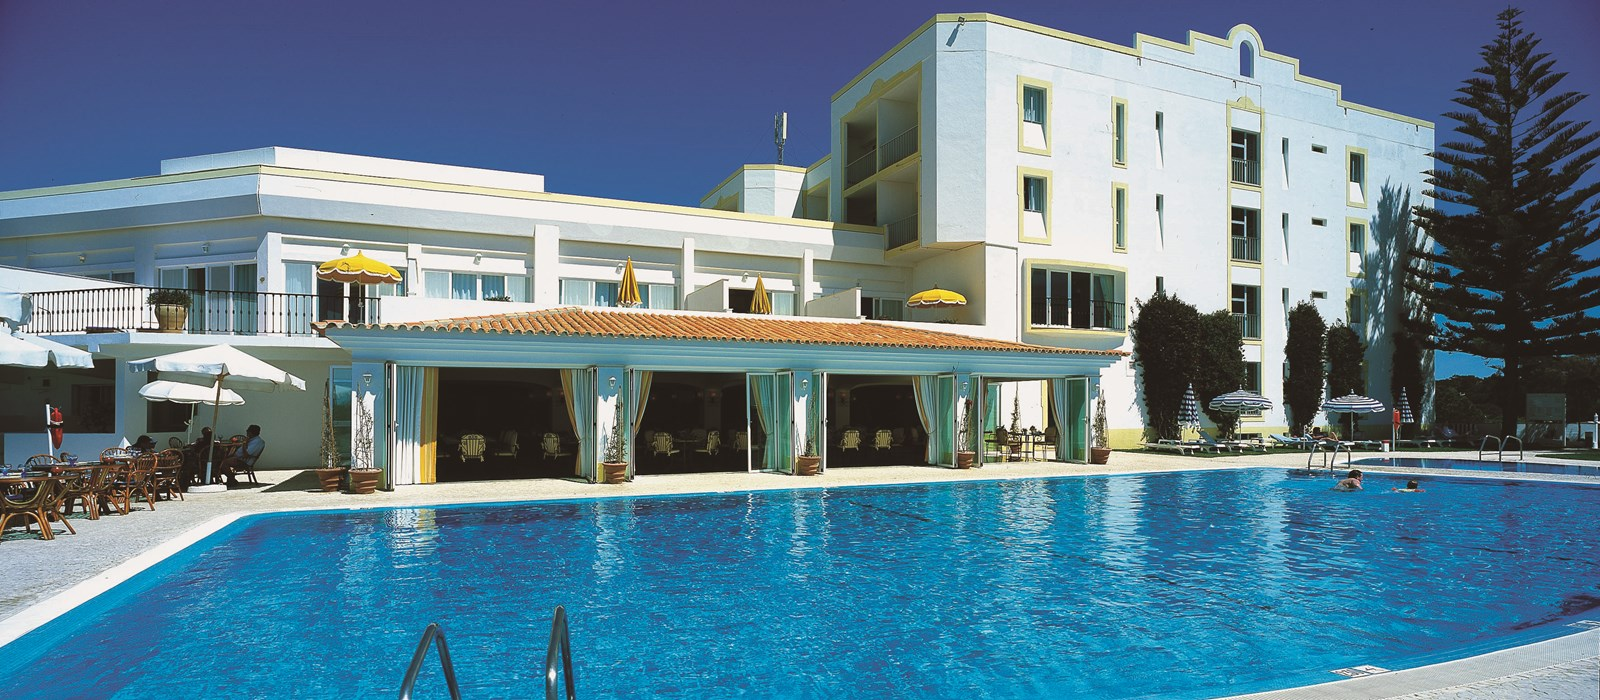 Swimming Pool Hotel : Heated outdoor swimming pool dona filipa hotel algarve